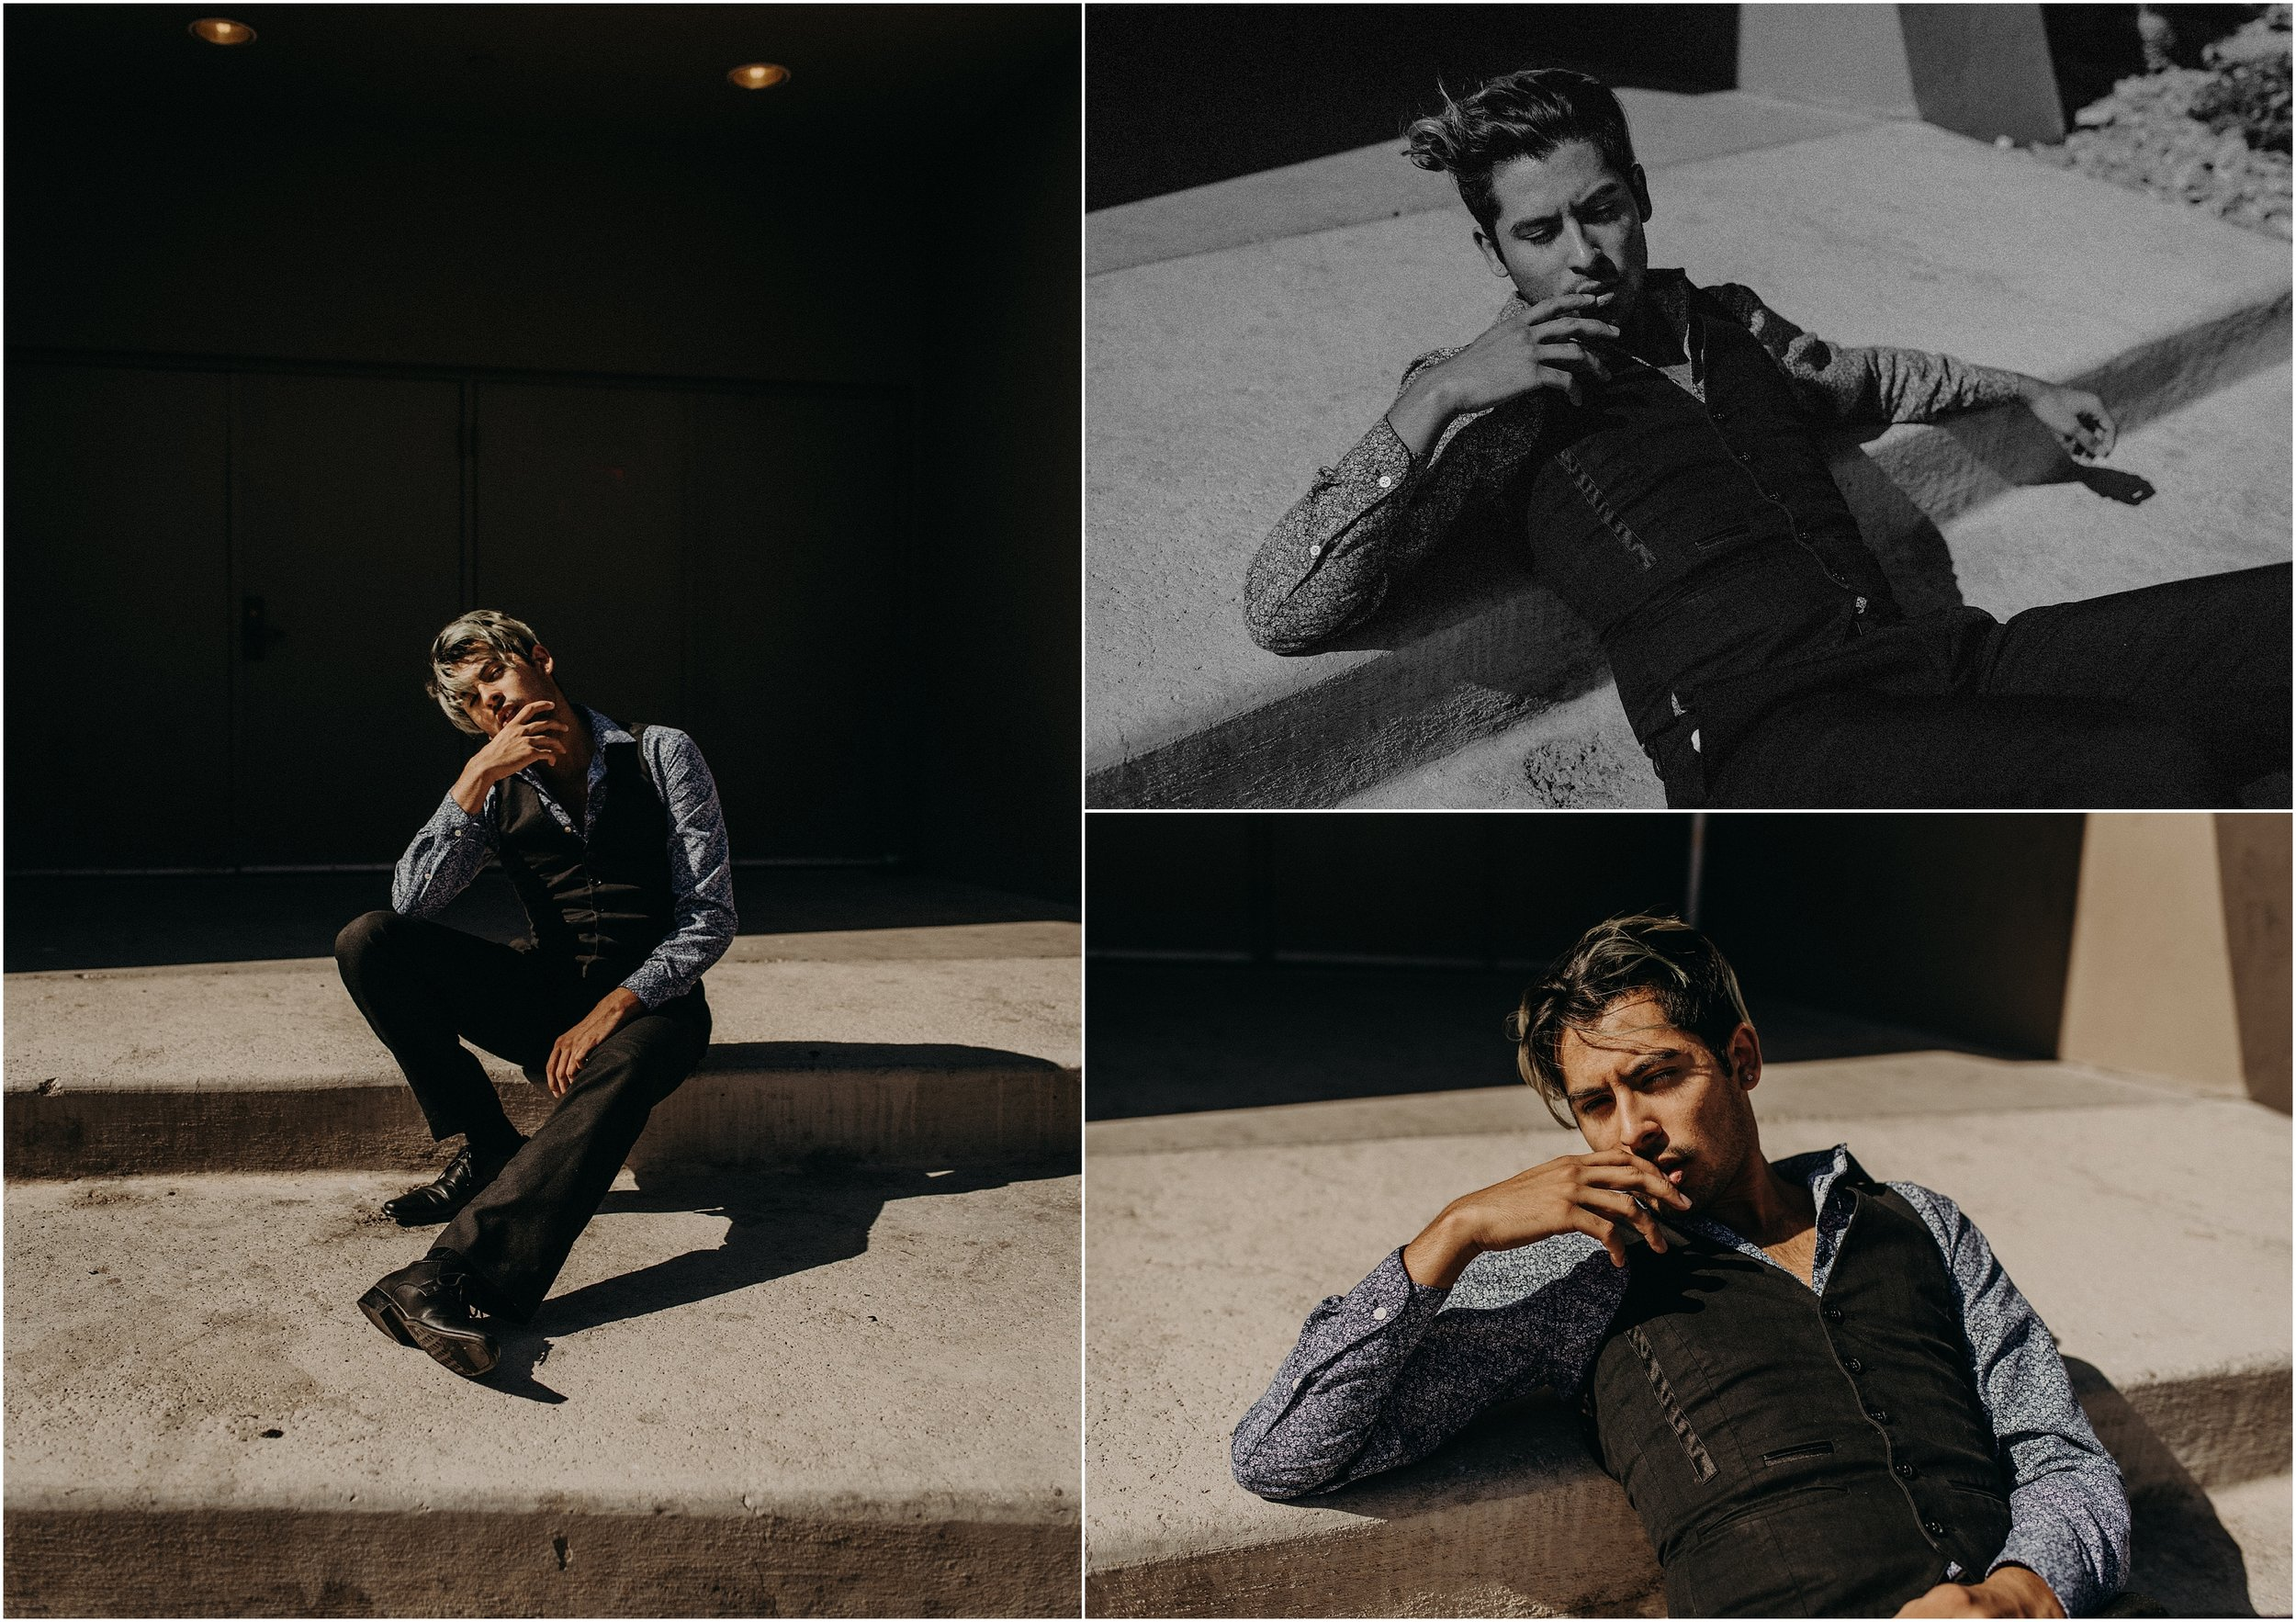 Jesse Garcia, Las Vegas male model, poses after a styled elopement photo shoot